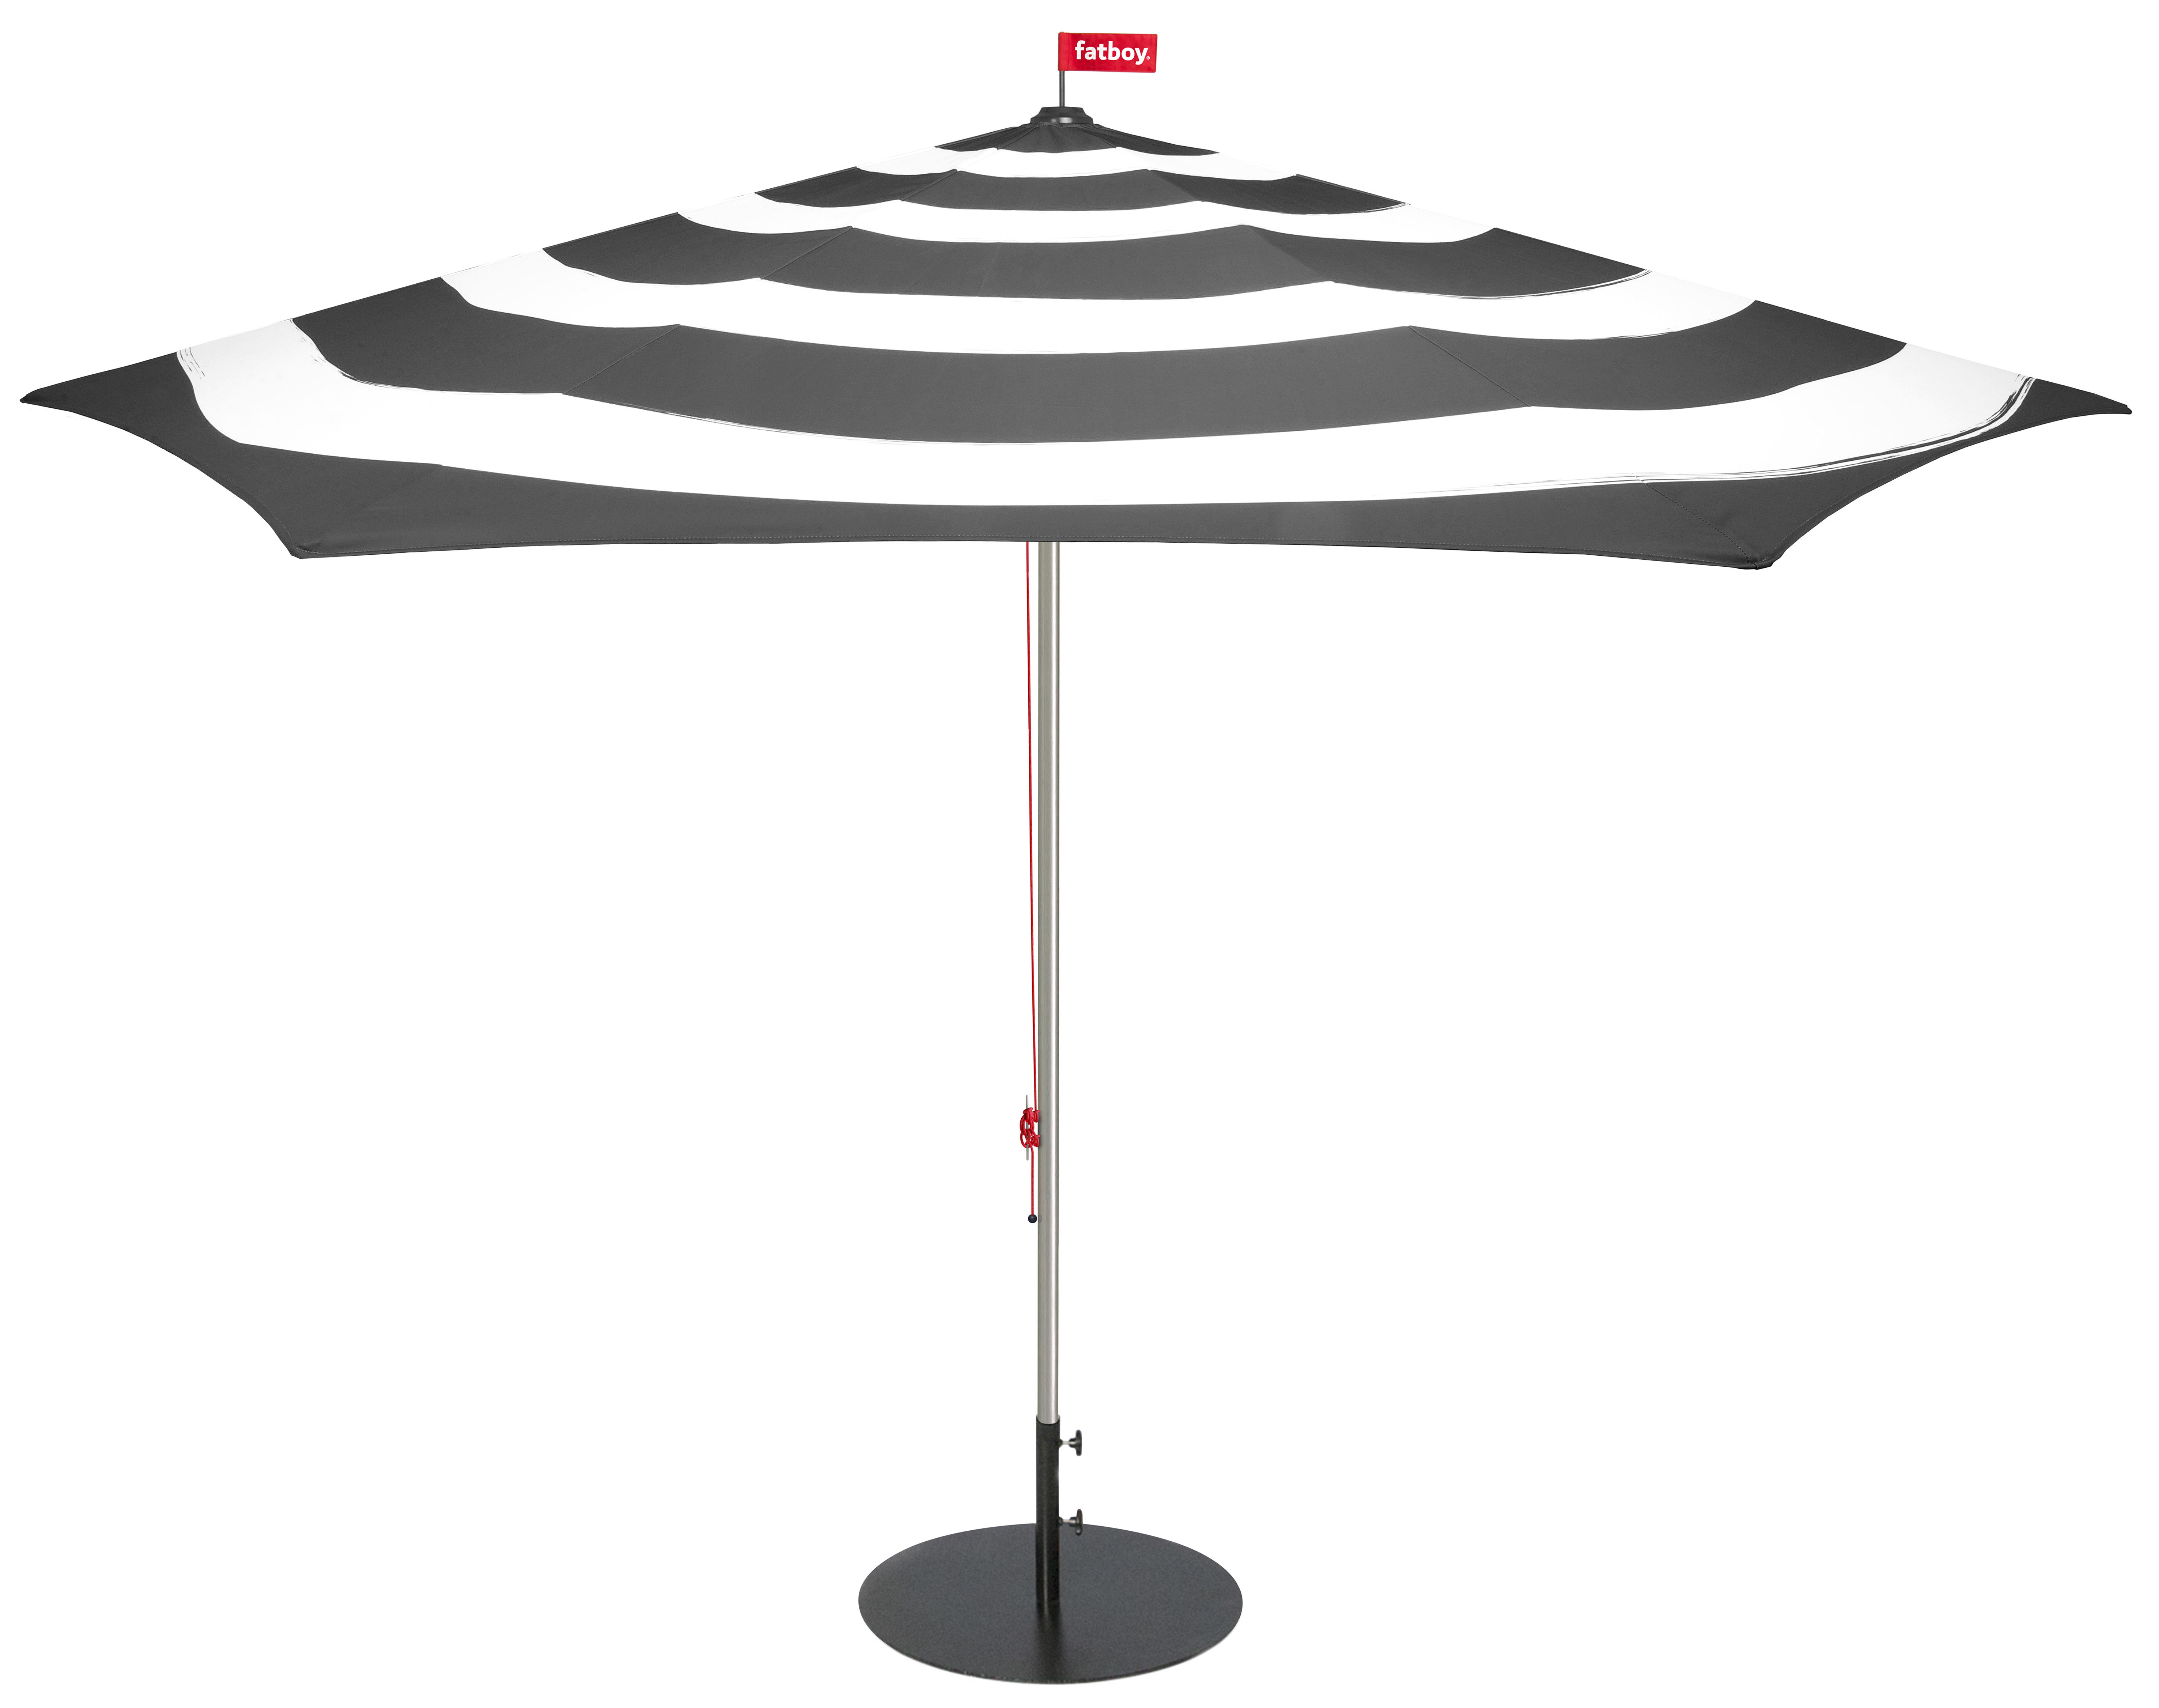 Outdoor - Parasols - Stripesol Parasol - Ø 350 cm by Fatboy - Anthracite - Aluminium, Polyester